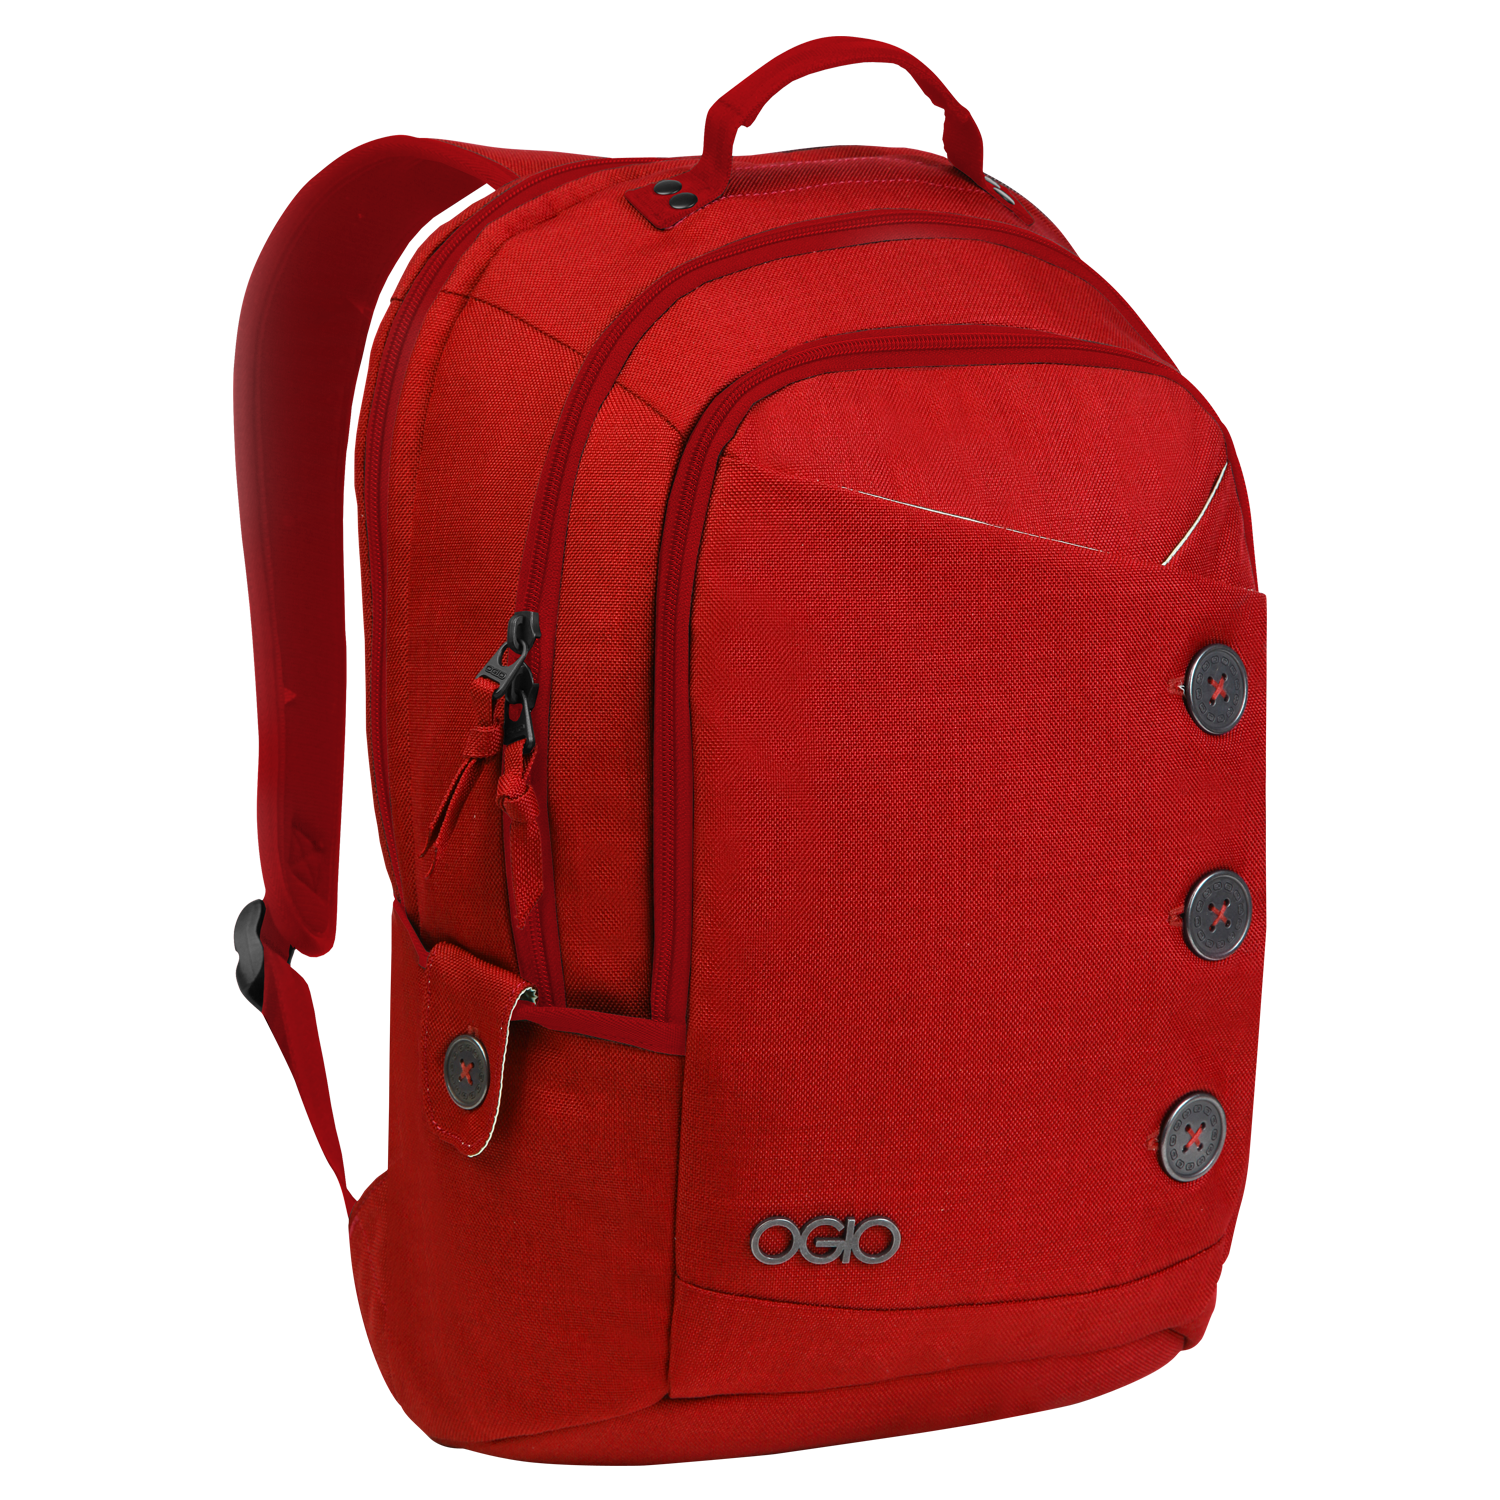 Backpack png. Images free download red